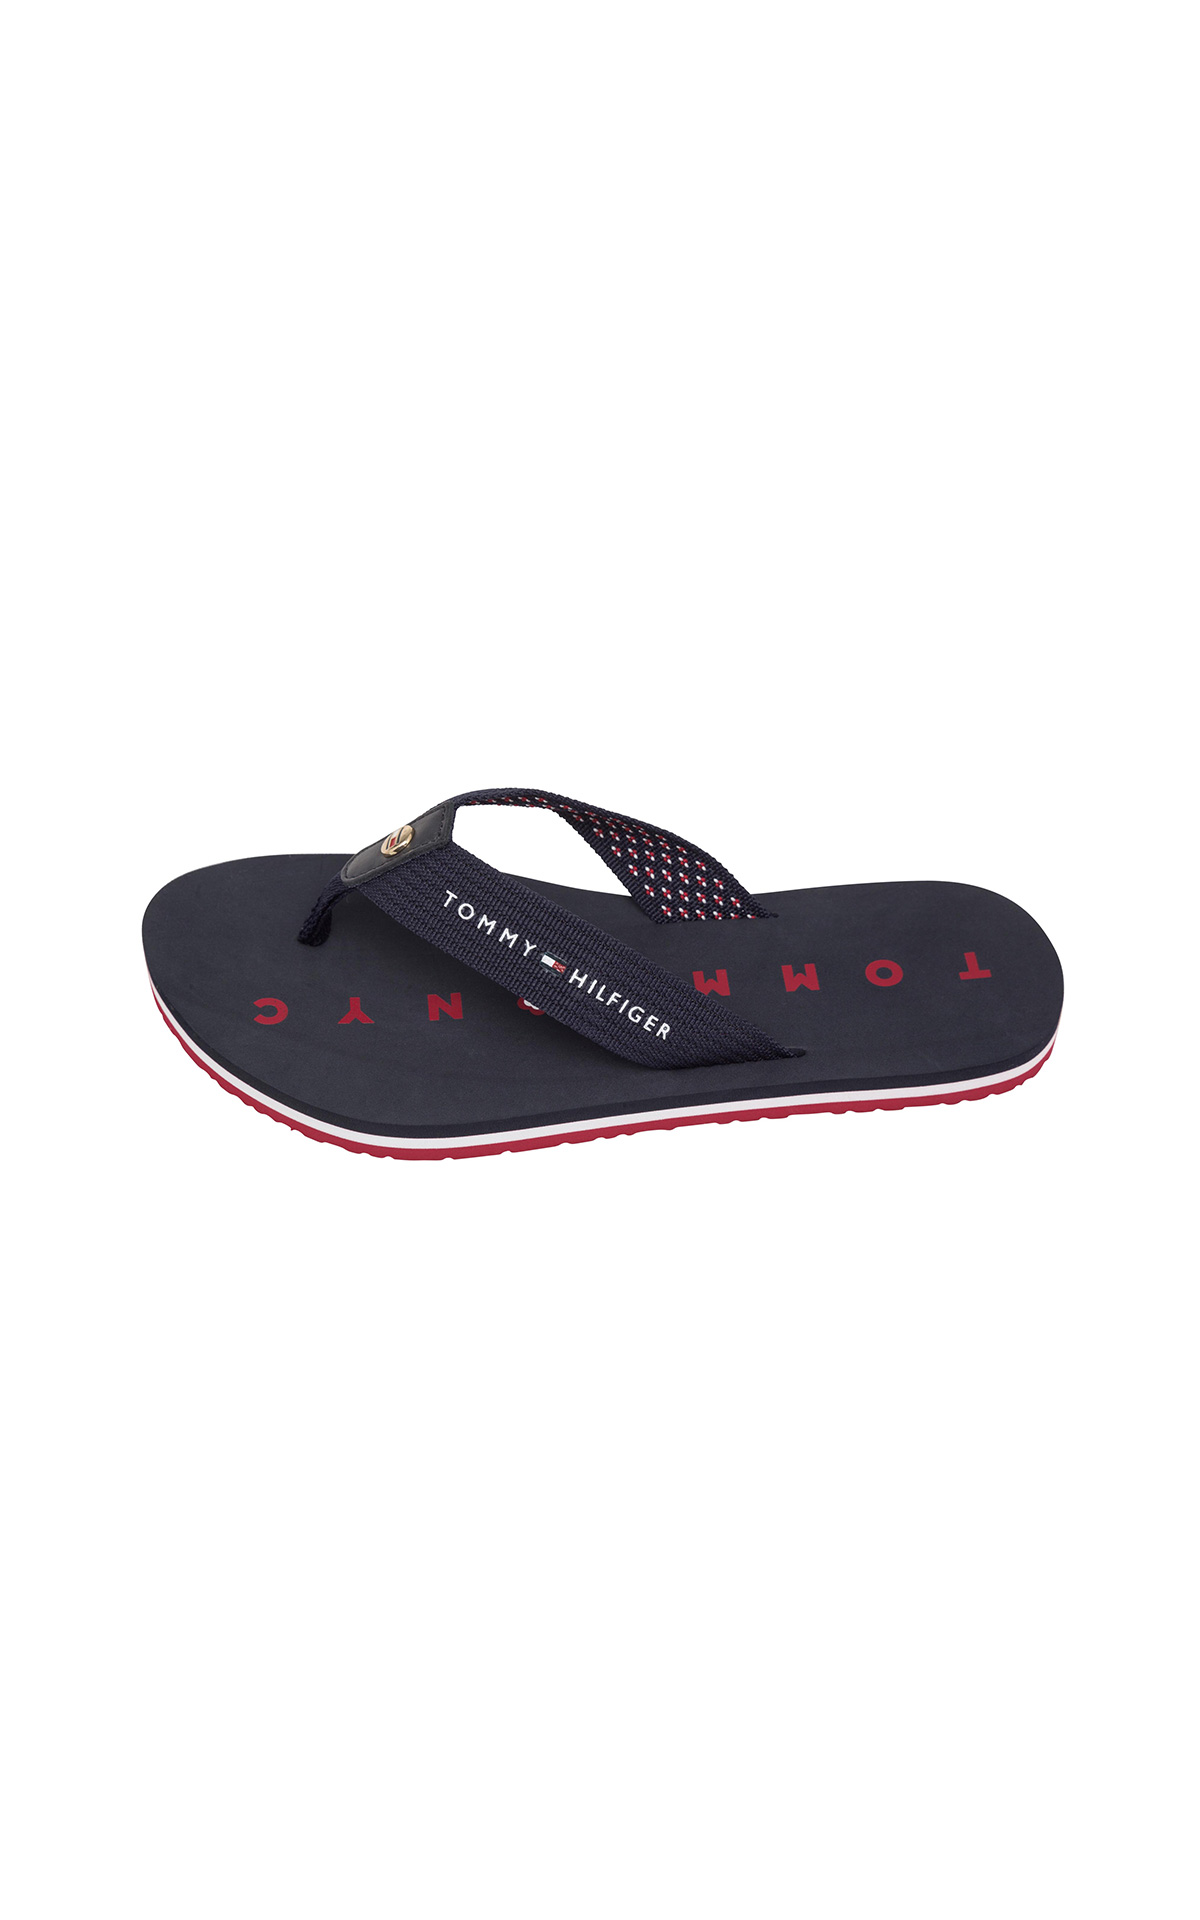 Tommy Hilfiger sandals at The Bicester Village Shopping Collection